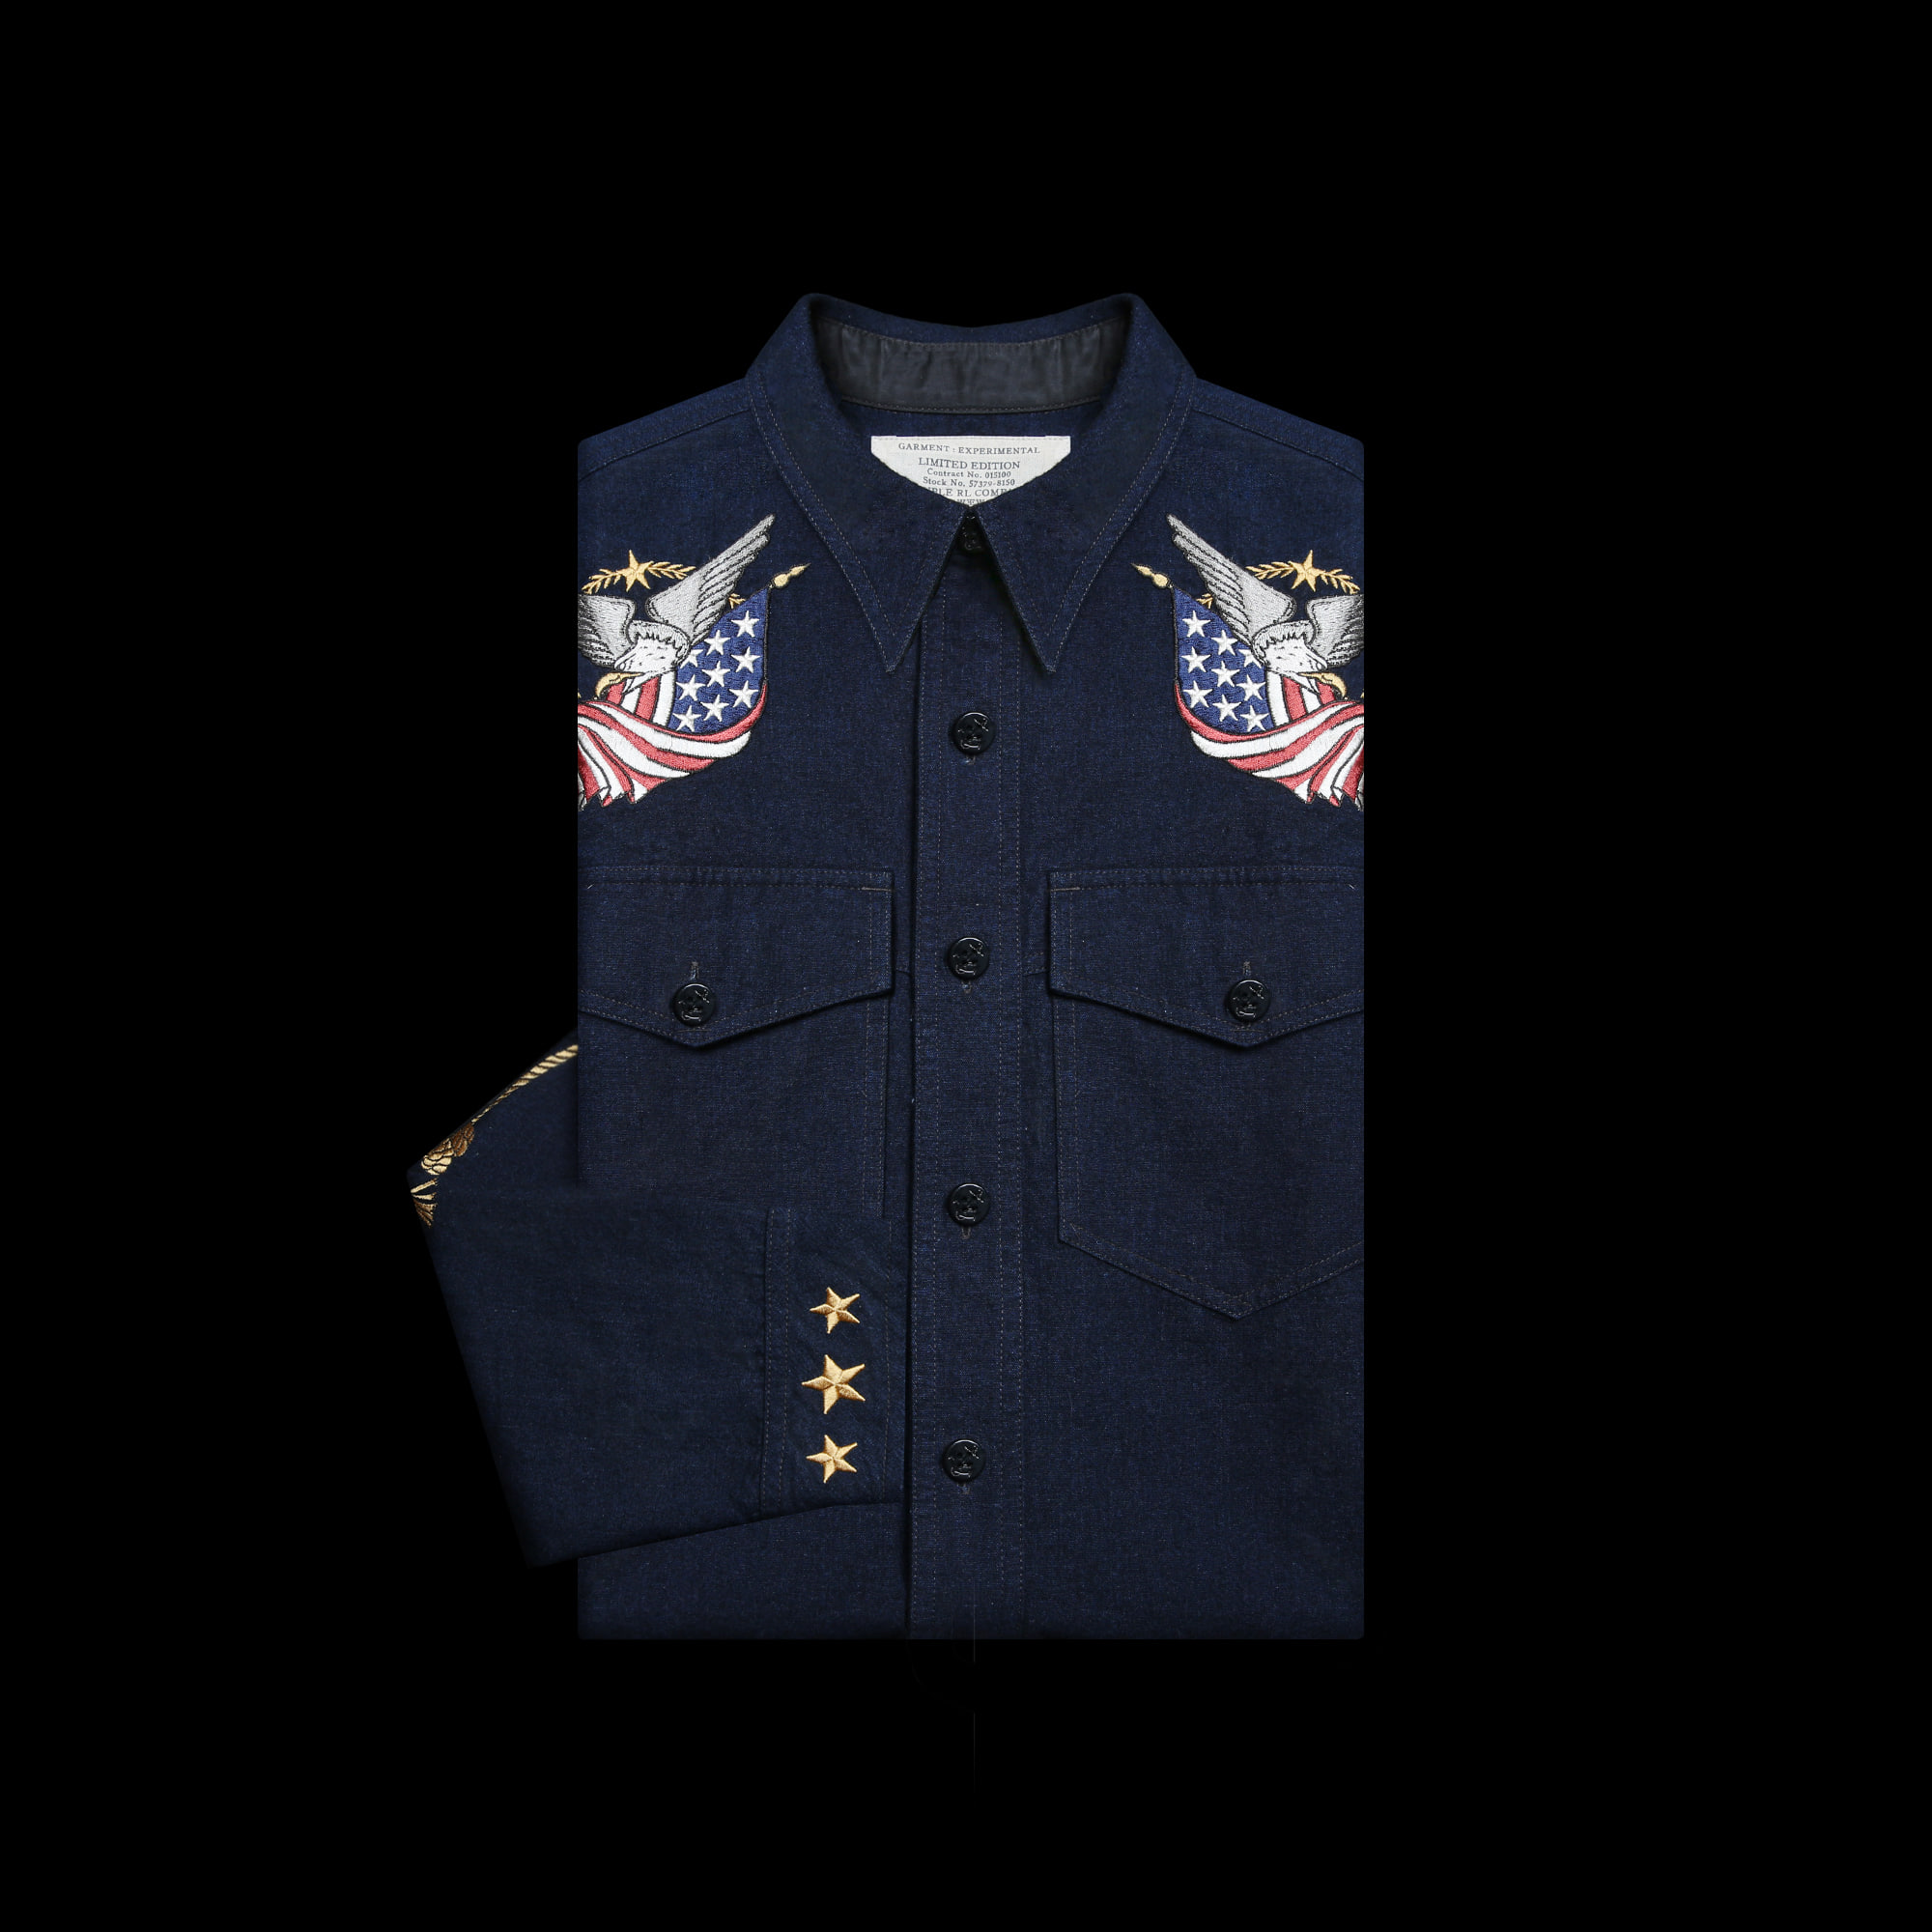 RRLLIMITED EDITIONNELSON CPO JACKET